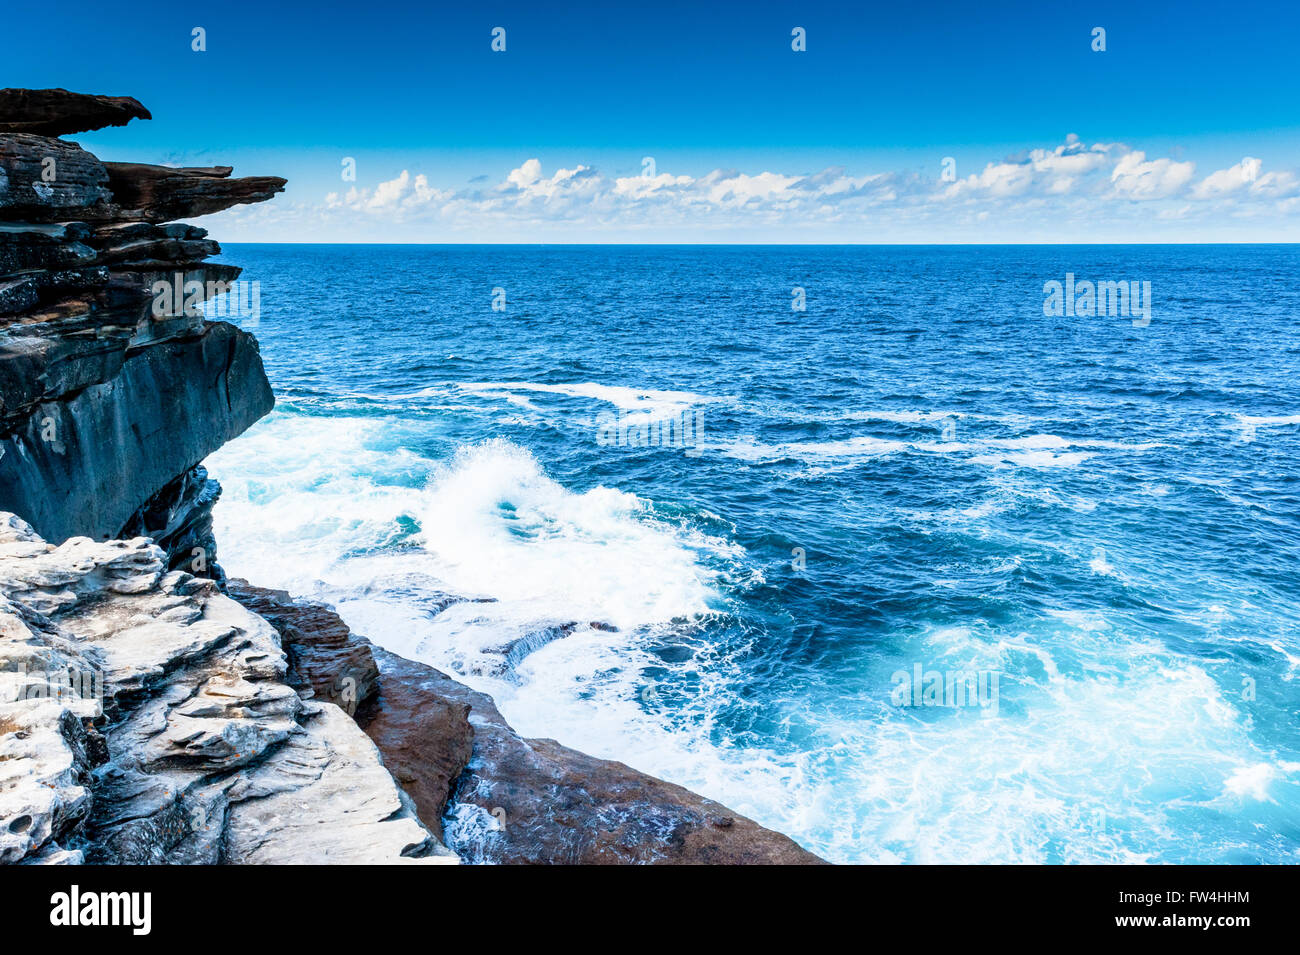 Rock formations eroded by wind and water along the Bondi to Coogee coastal cliff top walk in Sydney's Eastern suburbs Stock Photo